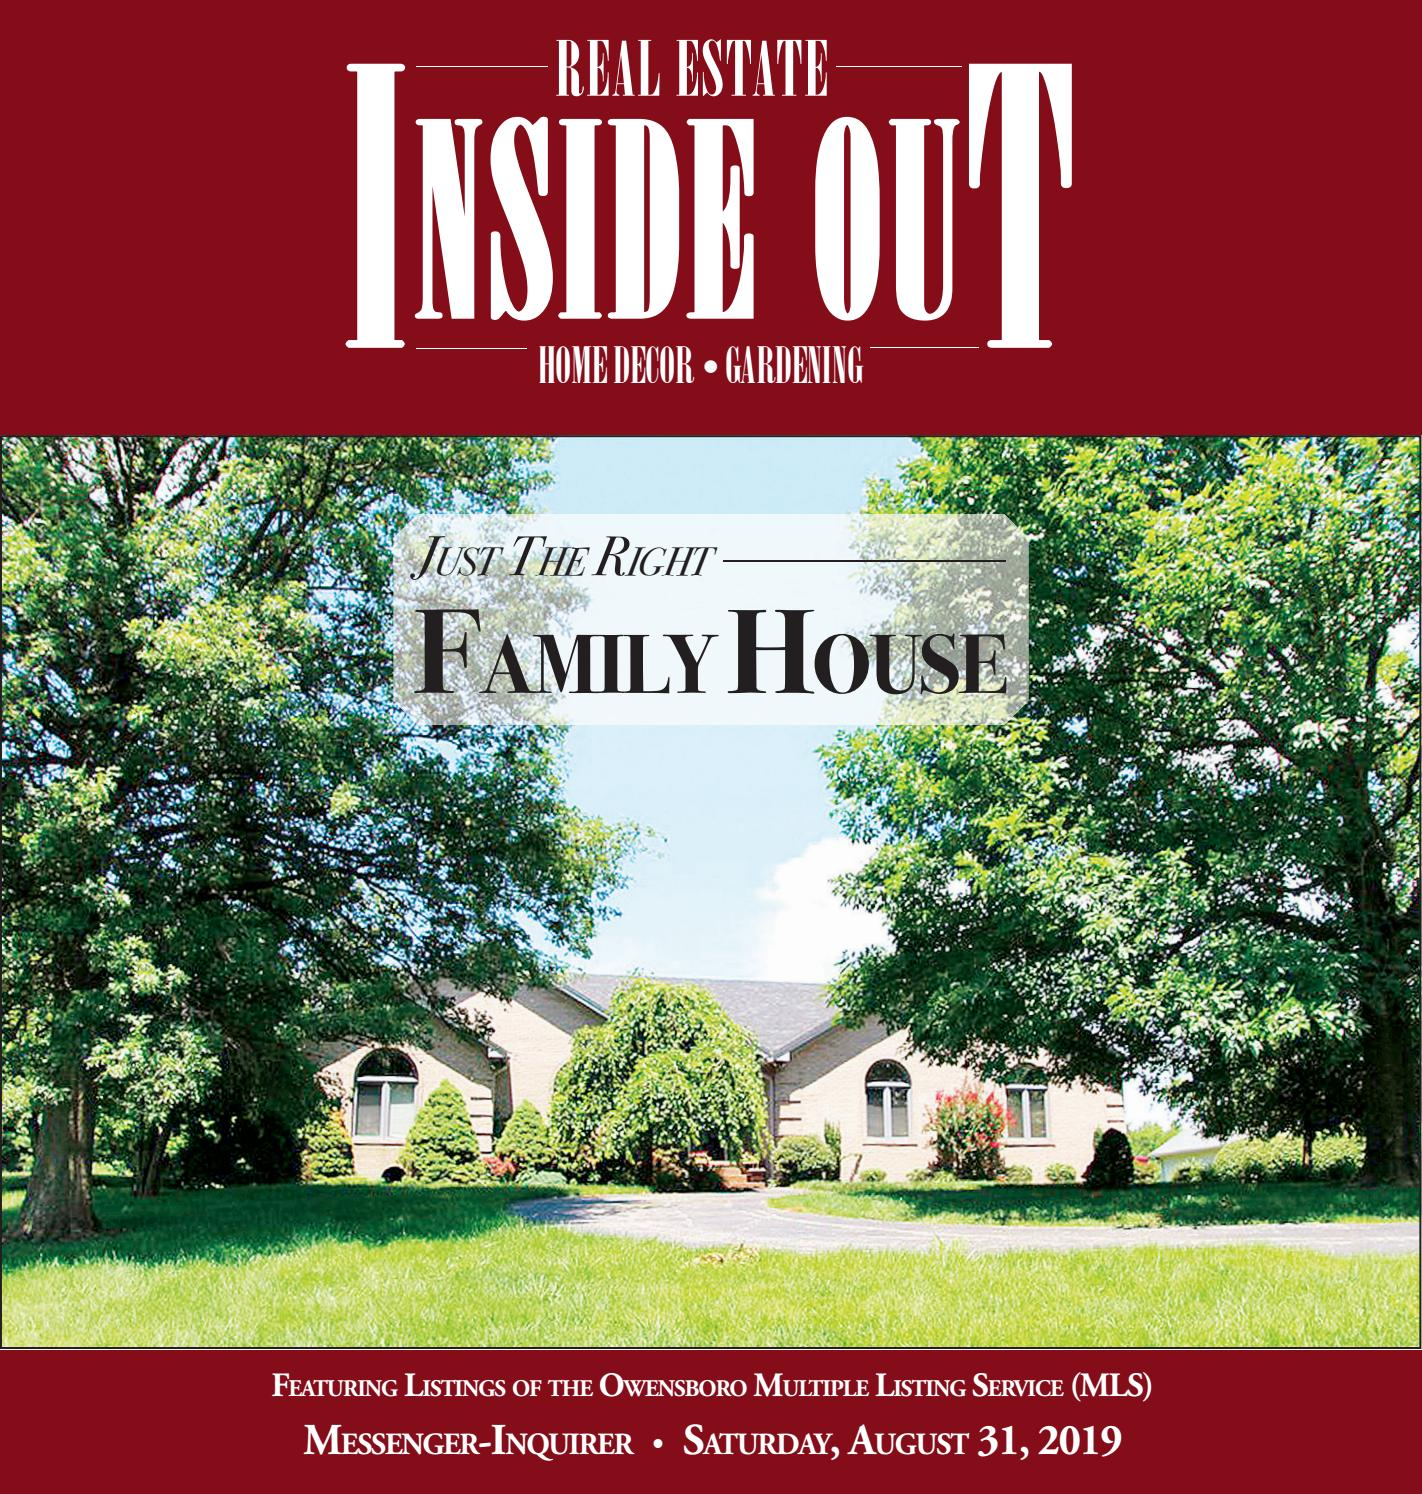 8-31-19 Real Estate Inside Out by Messenger-Inquirer - issuu